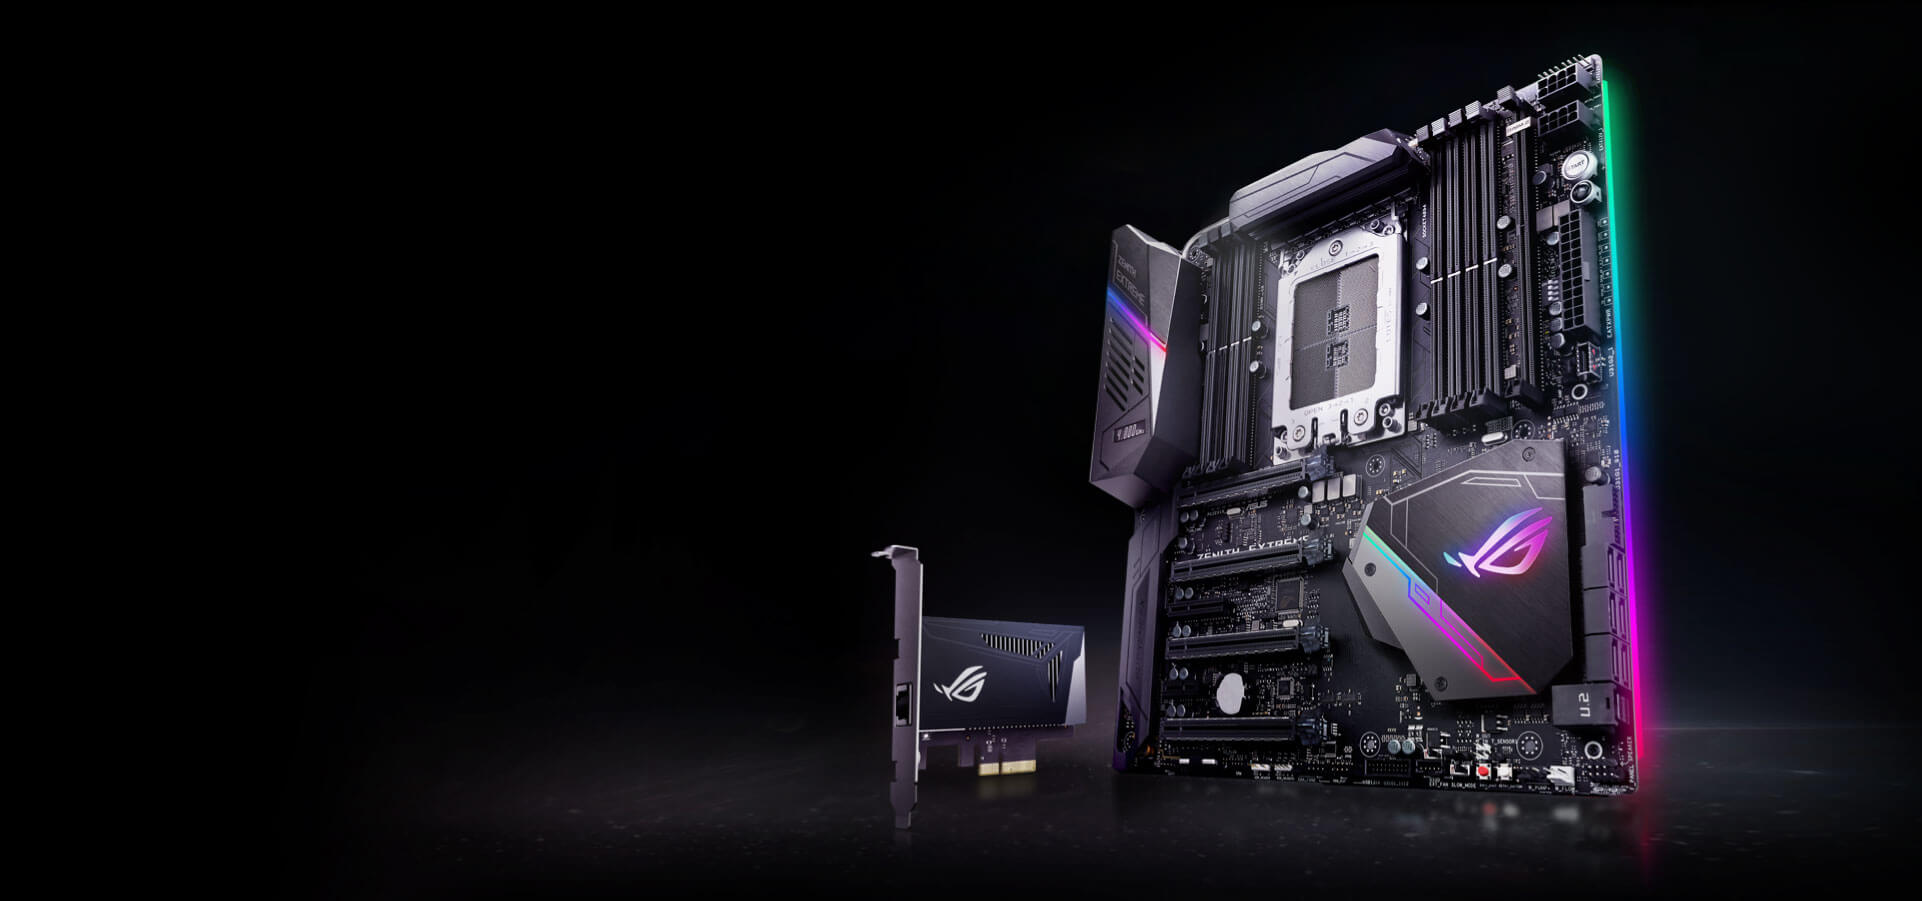 Rog Zenith Extreme Motherboards Asus Global Celestial Stb Processors Media Processing Components And Sdk Support